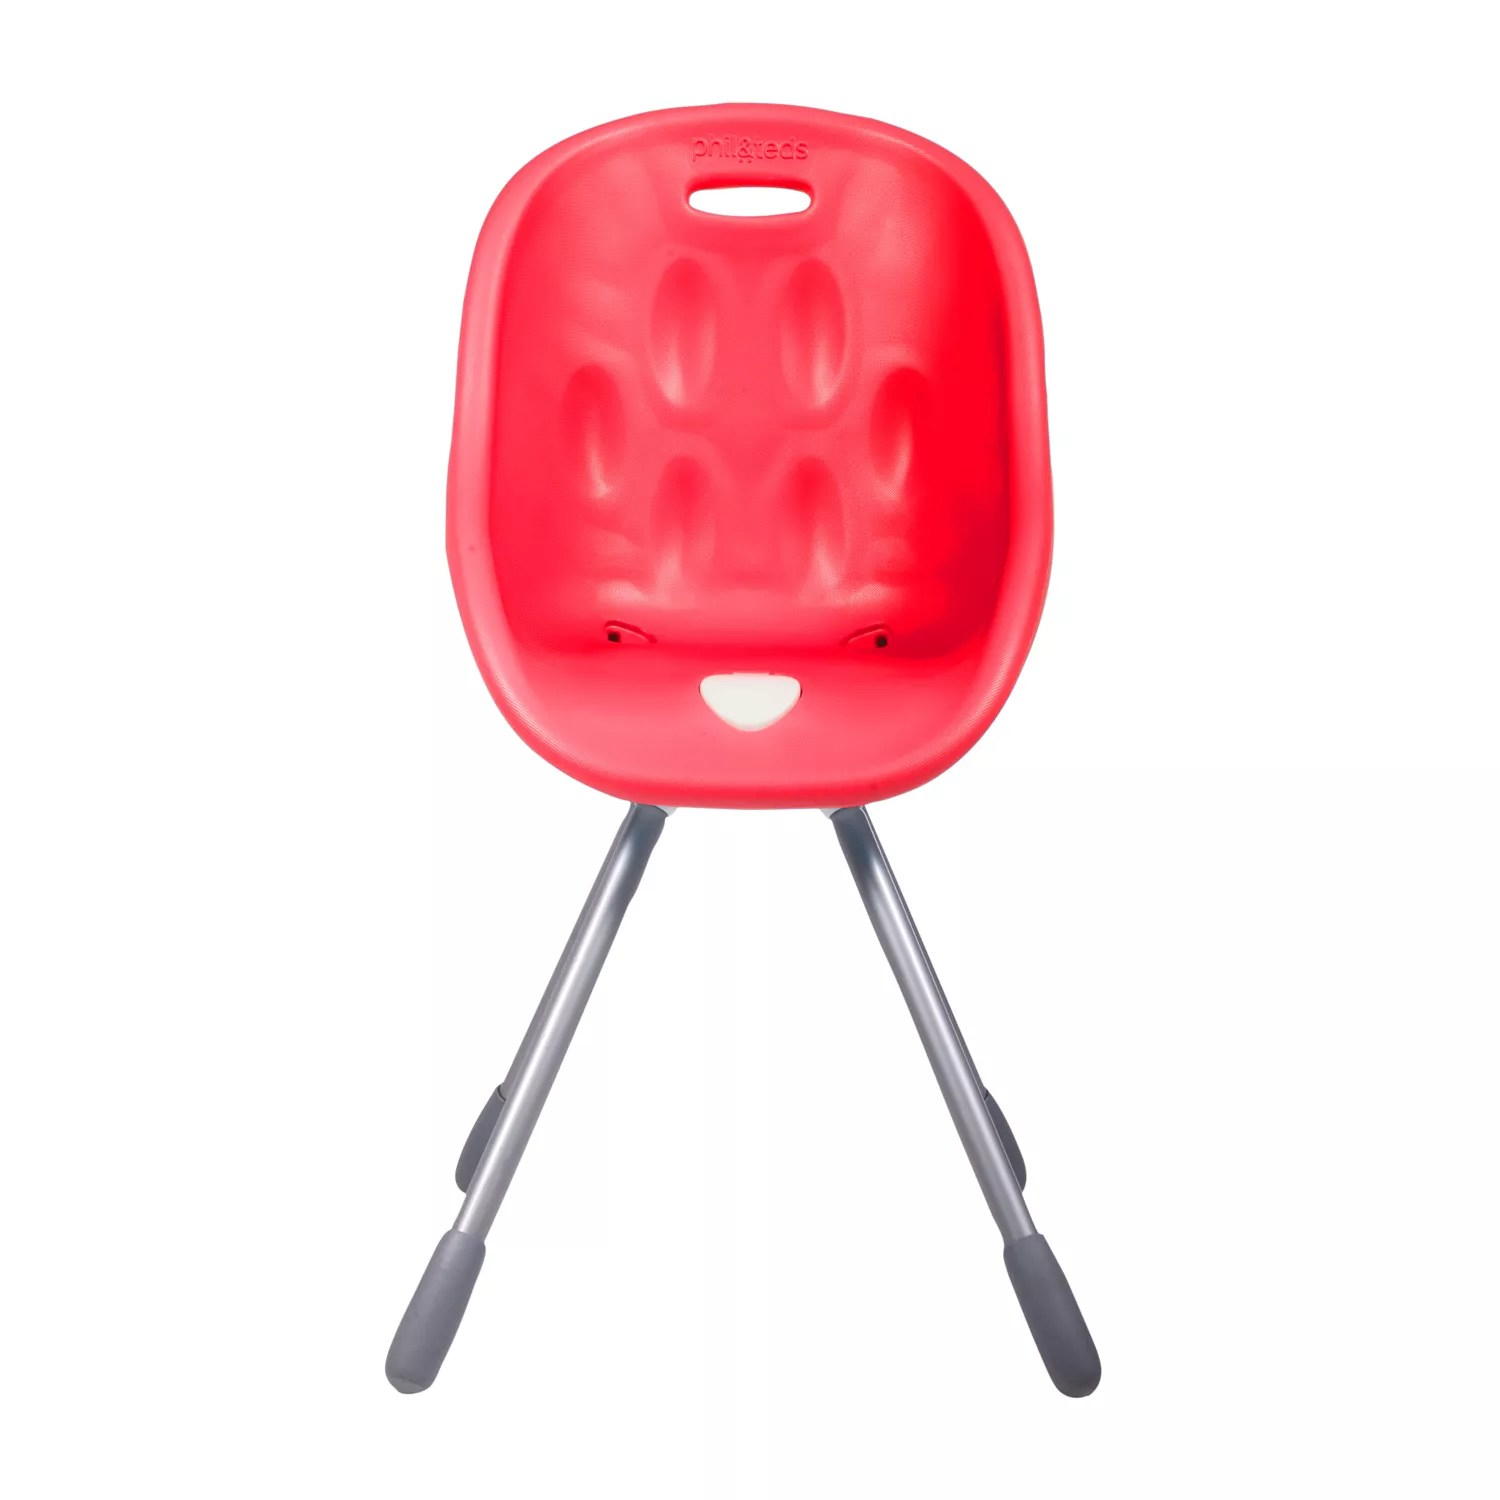 phil teds poppy high chair folding with umbrella null and